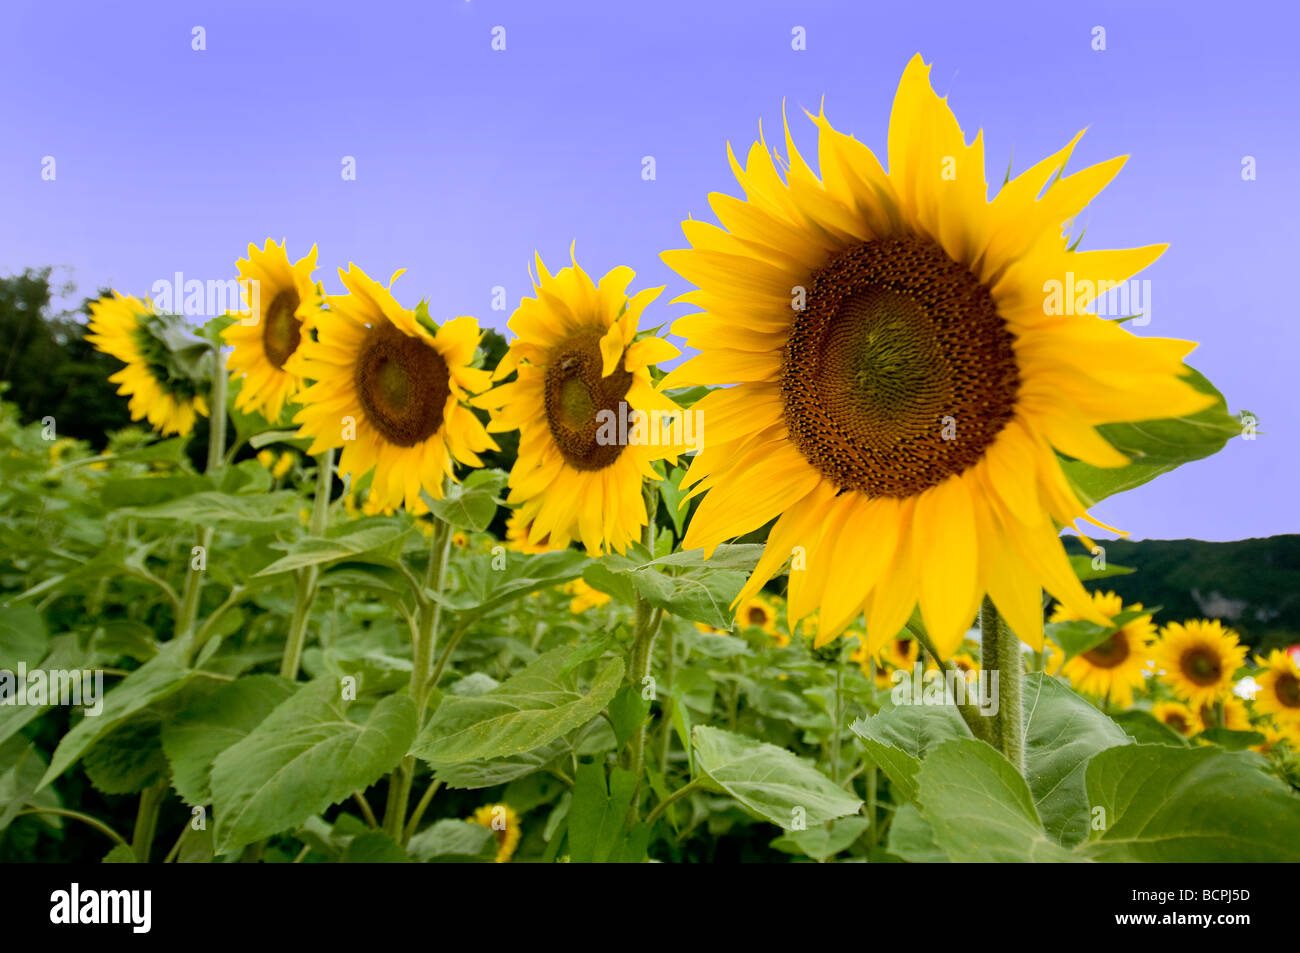 sunflowers stockfotos sunflowers bilder alamy. Black Bedroom Furniture Sets. Home Design Ideas